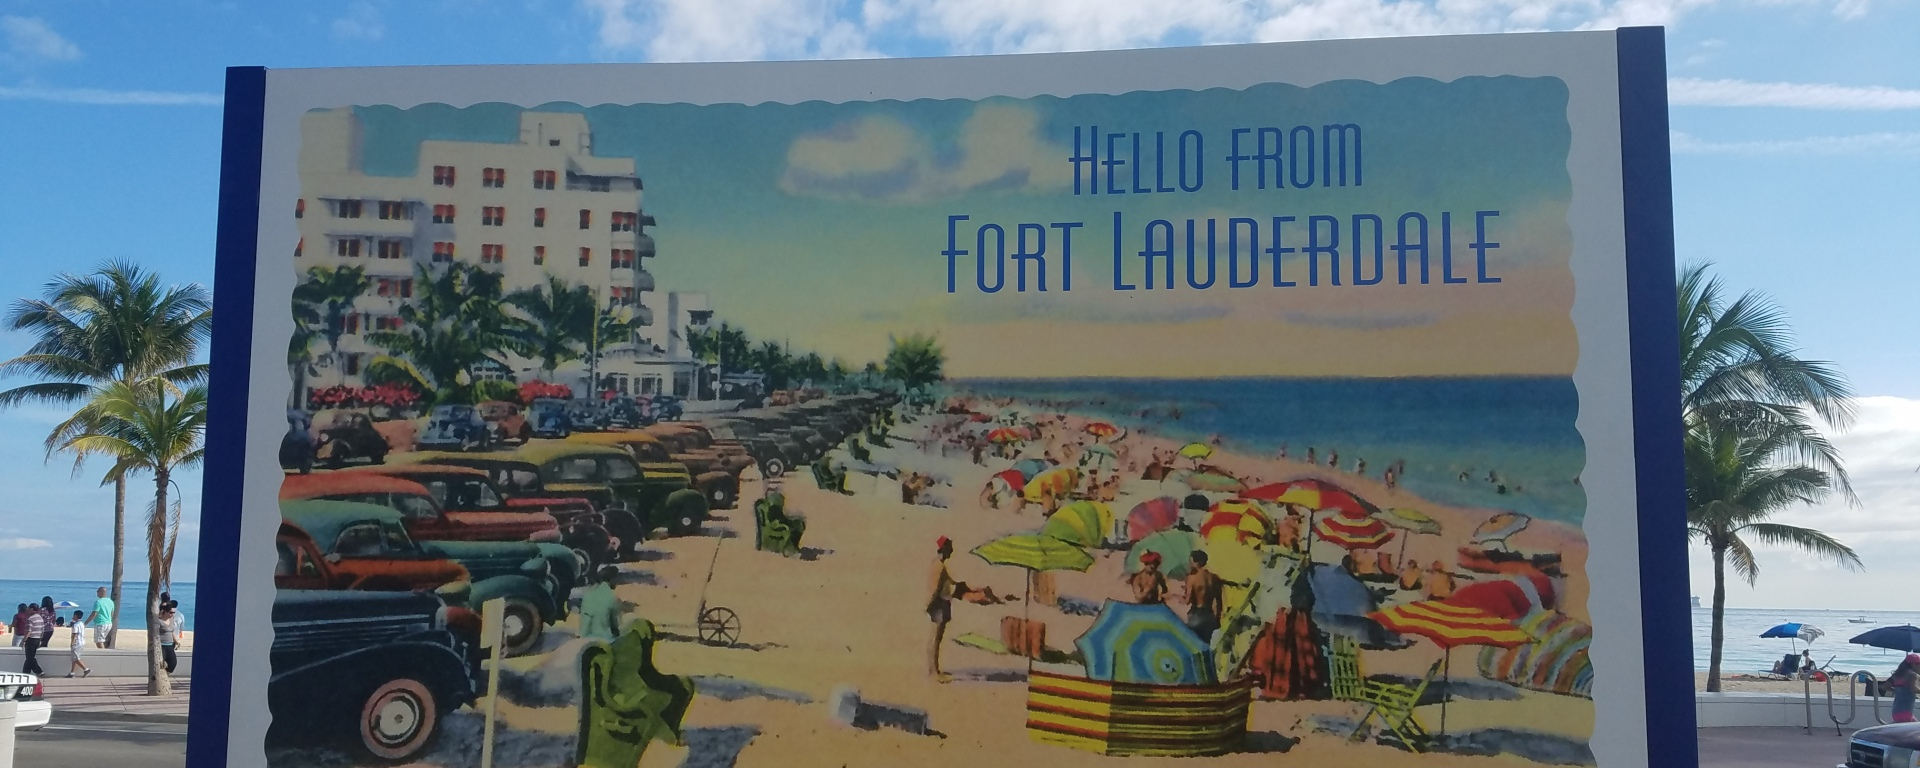 iwannabealady.com hello from Fort Lauderdale Beach